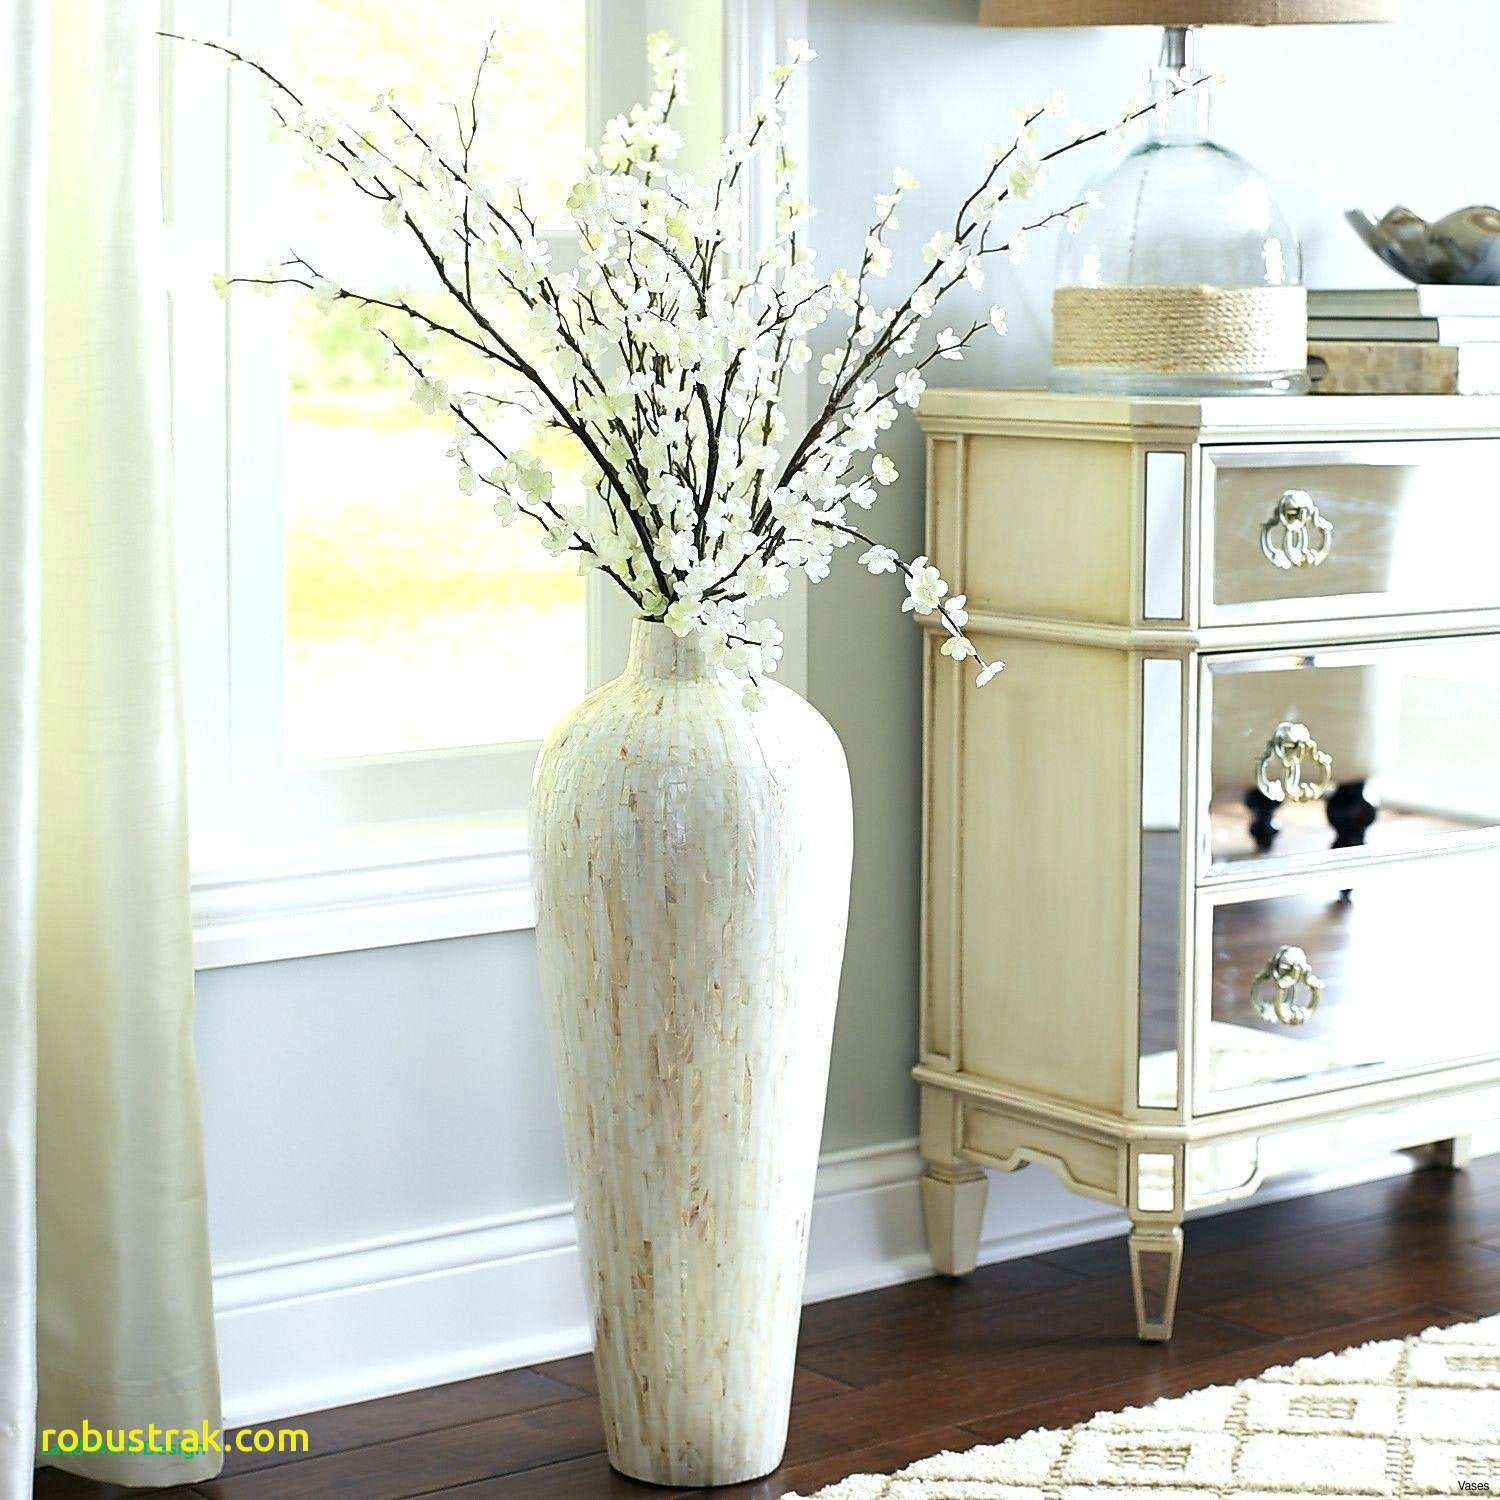 large plant vase of 20 elegant large floor vase decoration ideas bogekompresorturkiye com inside tall floor vaseh vases extra large vase vasei 0d tall vase with branches